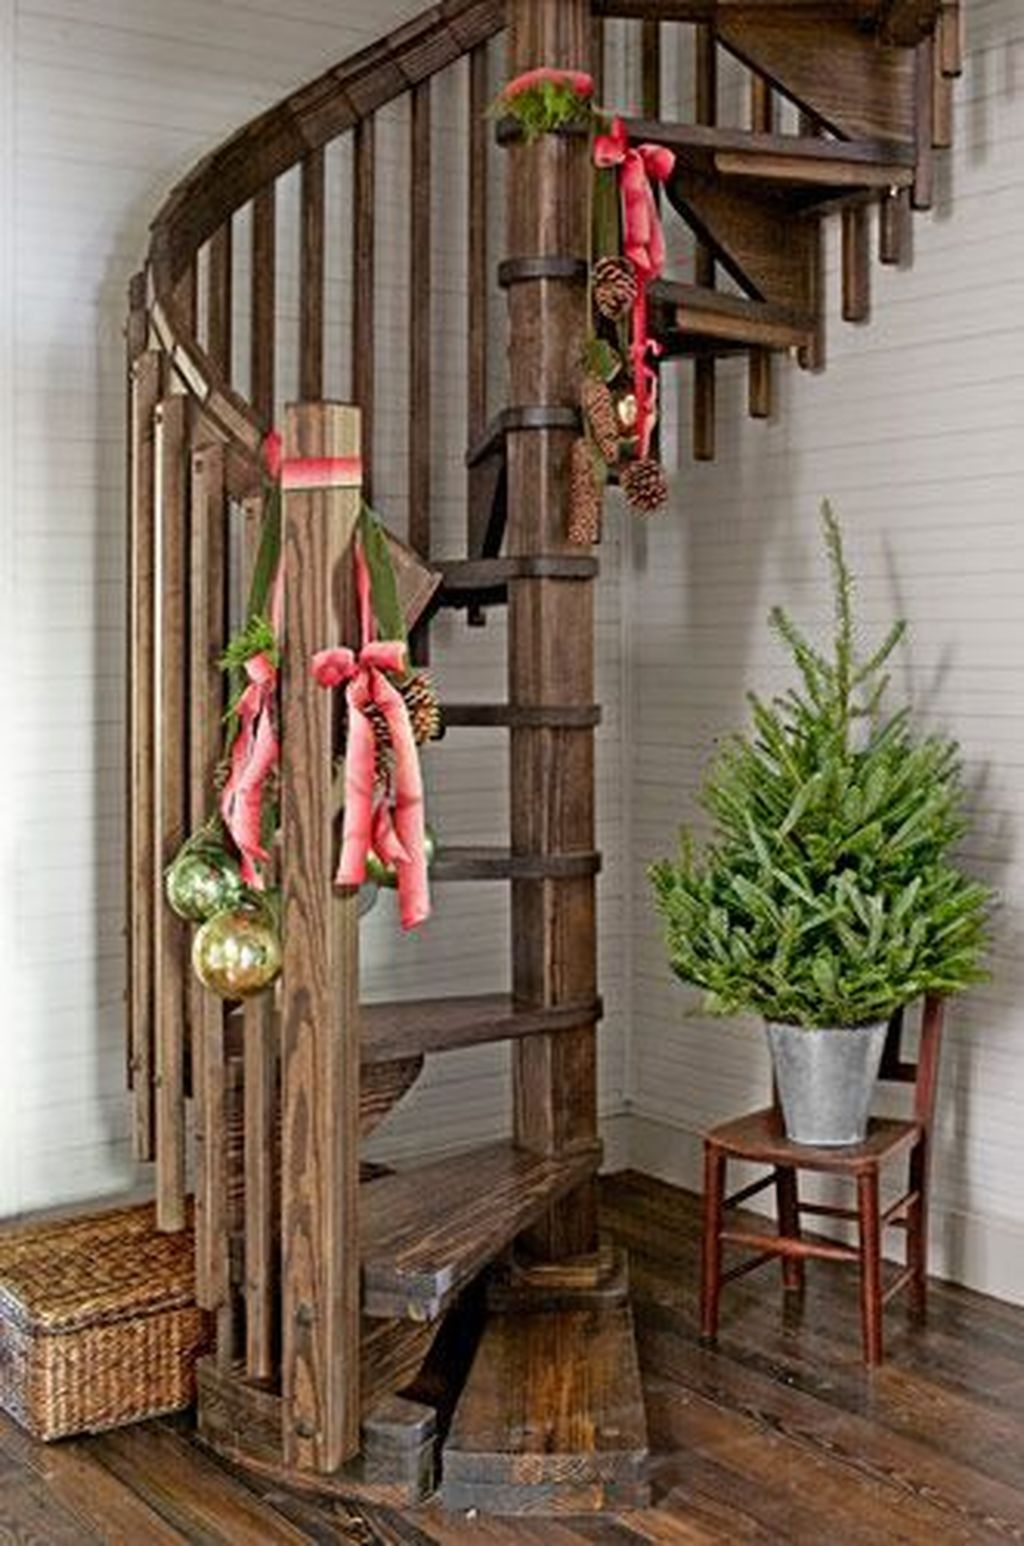 Charming Winter Staircase Design Ideas With Banister Ornaments To Try Asap 22